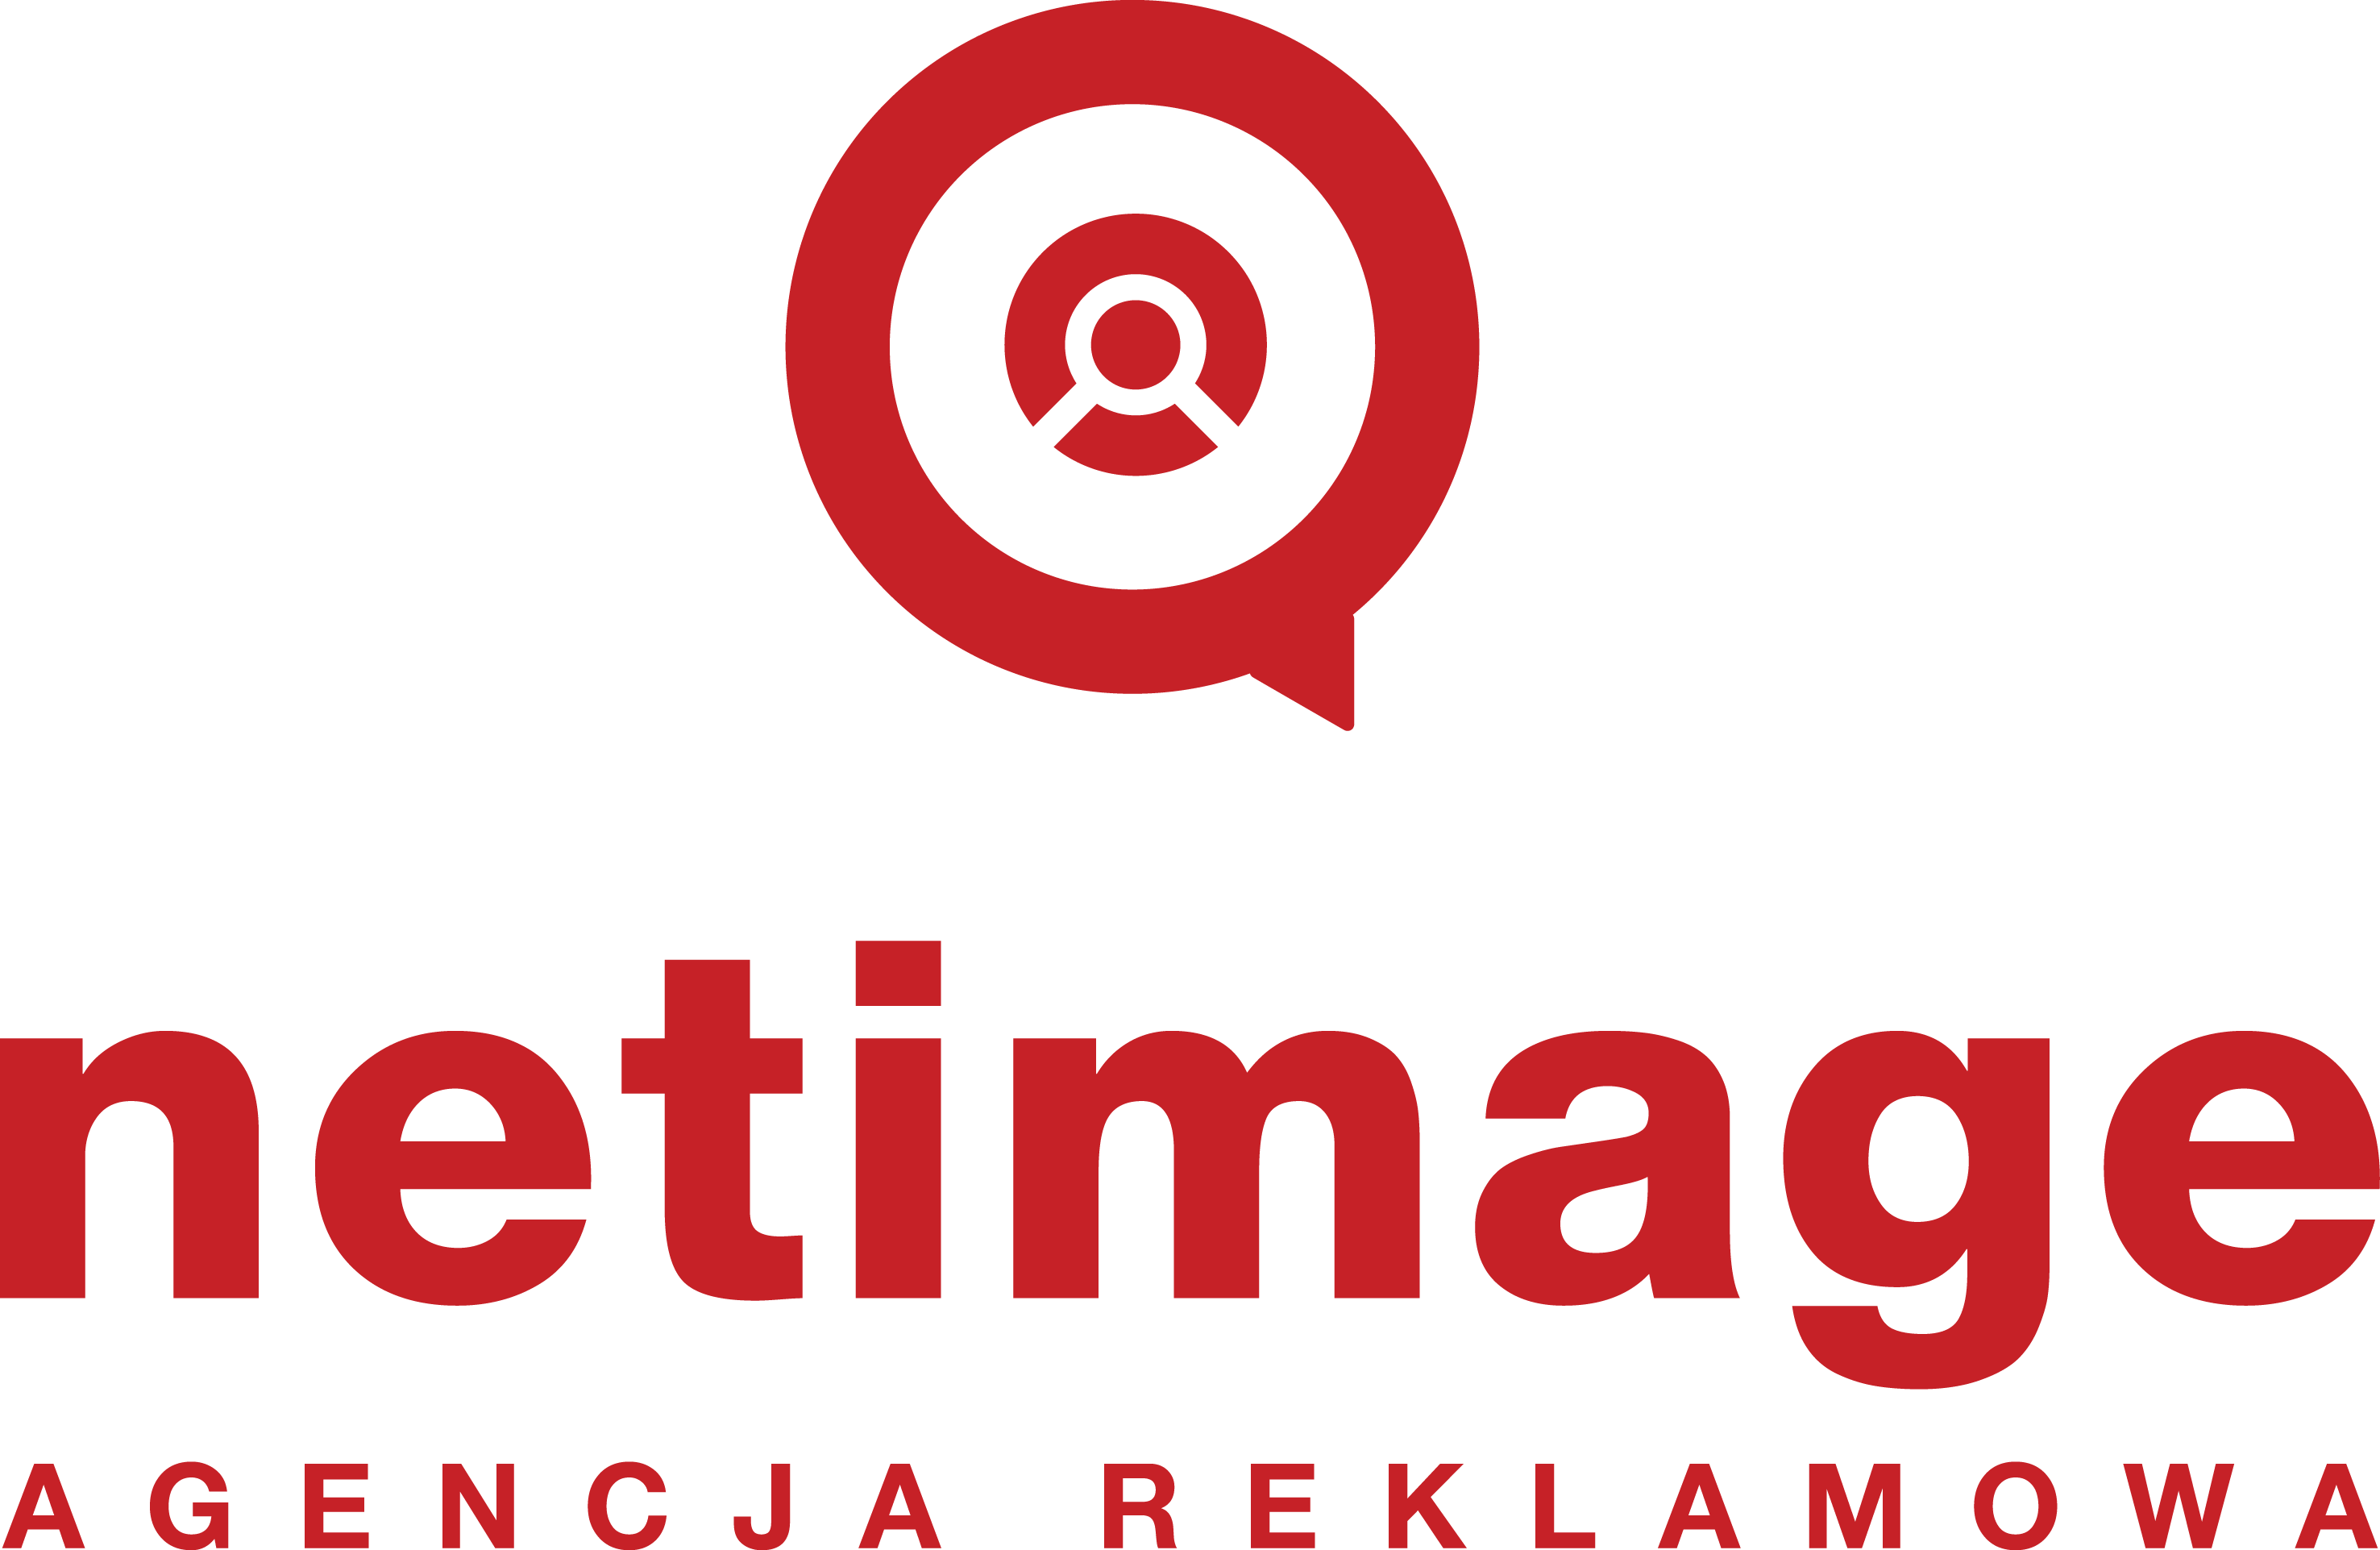 netimage